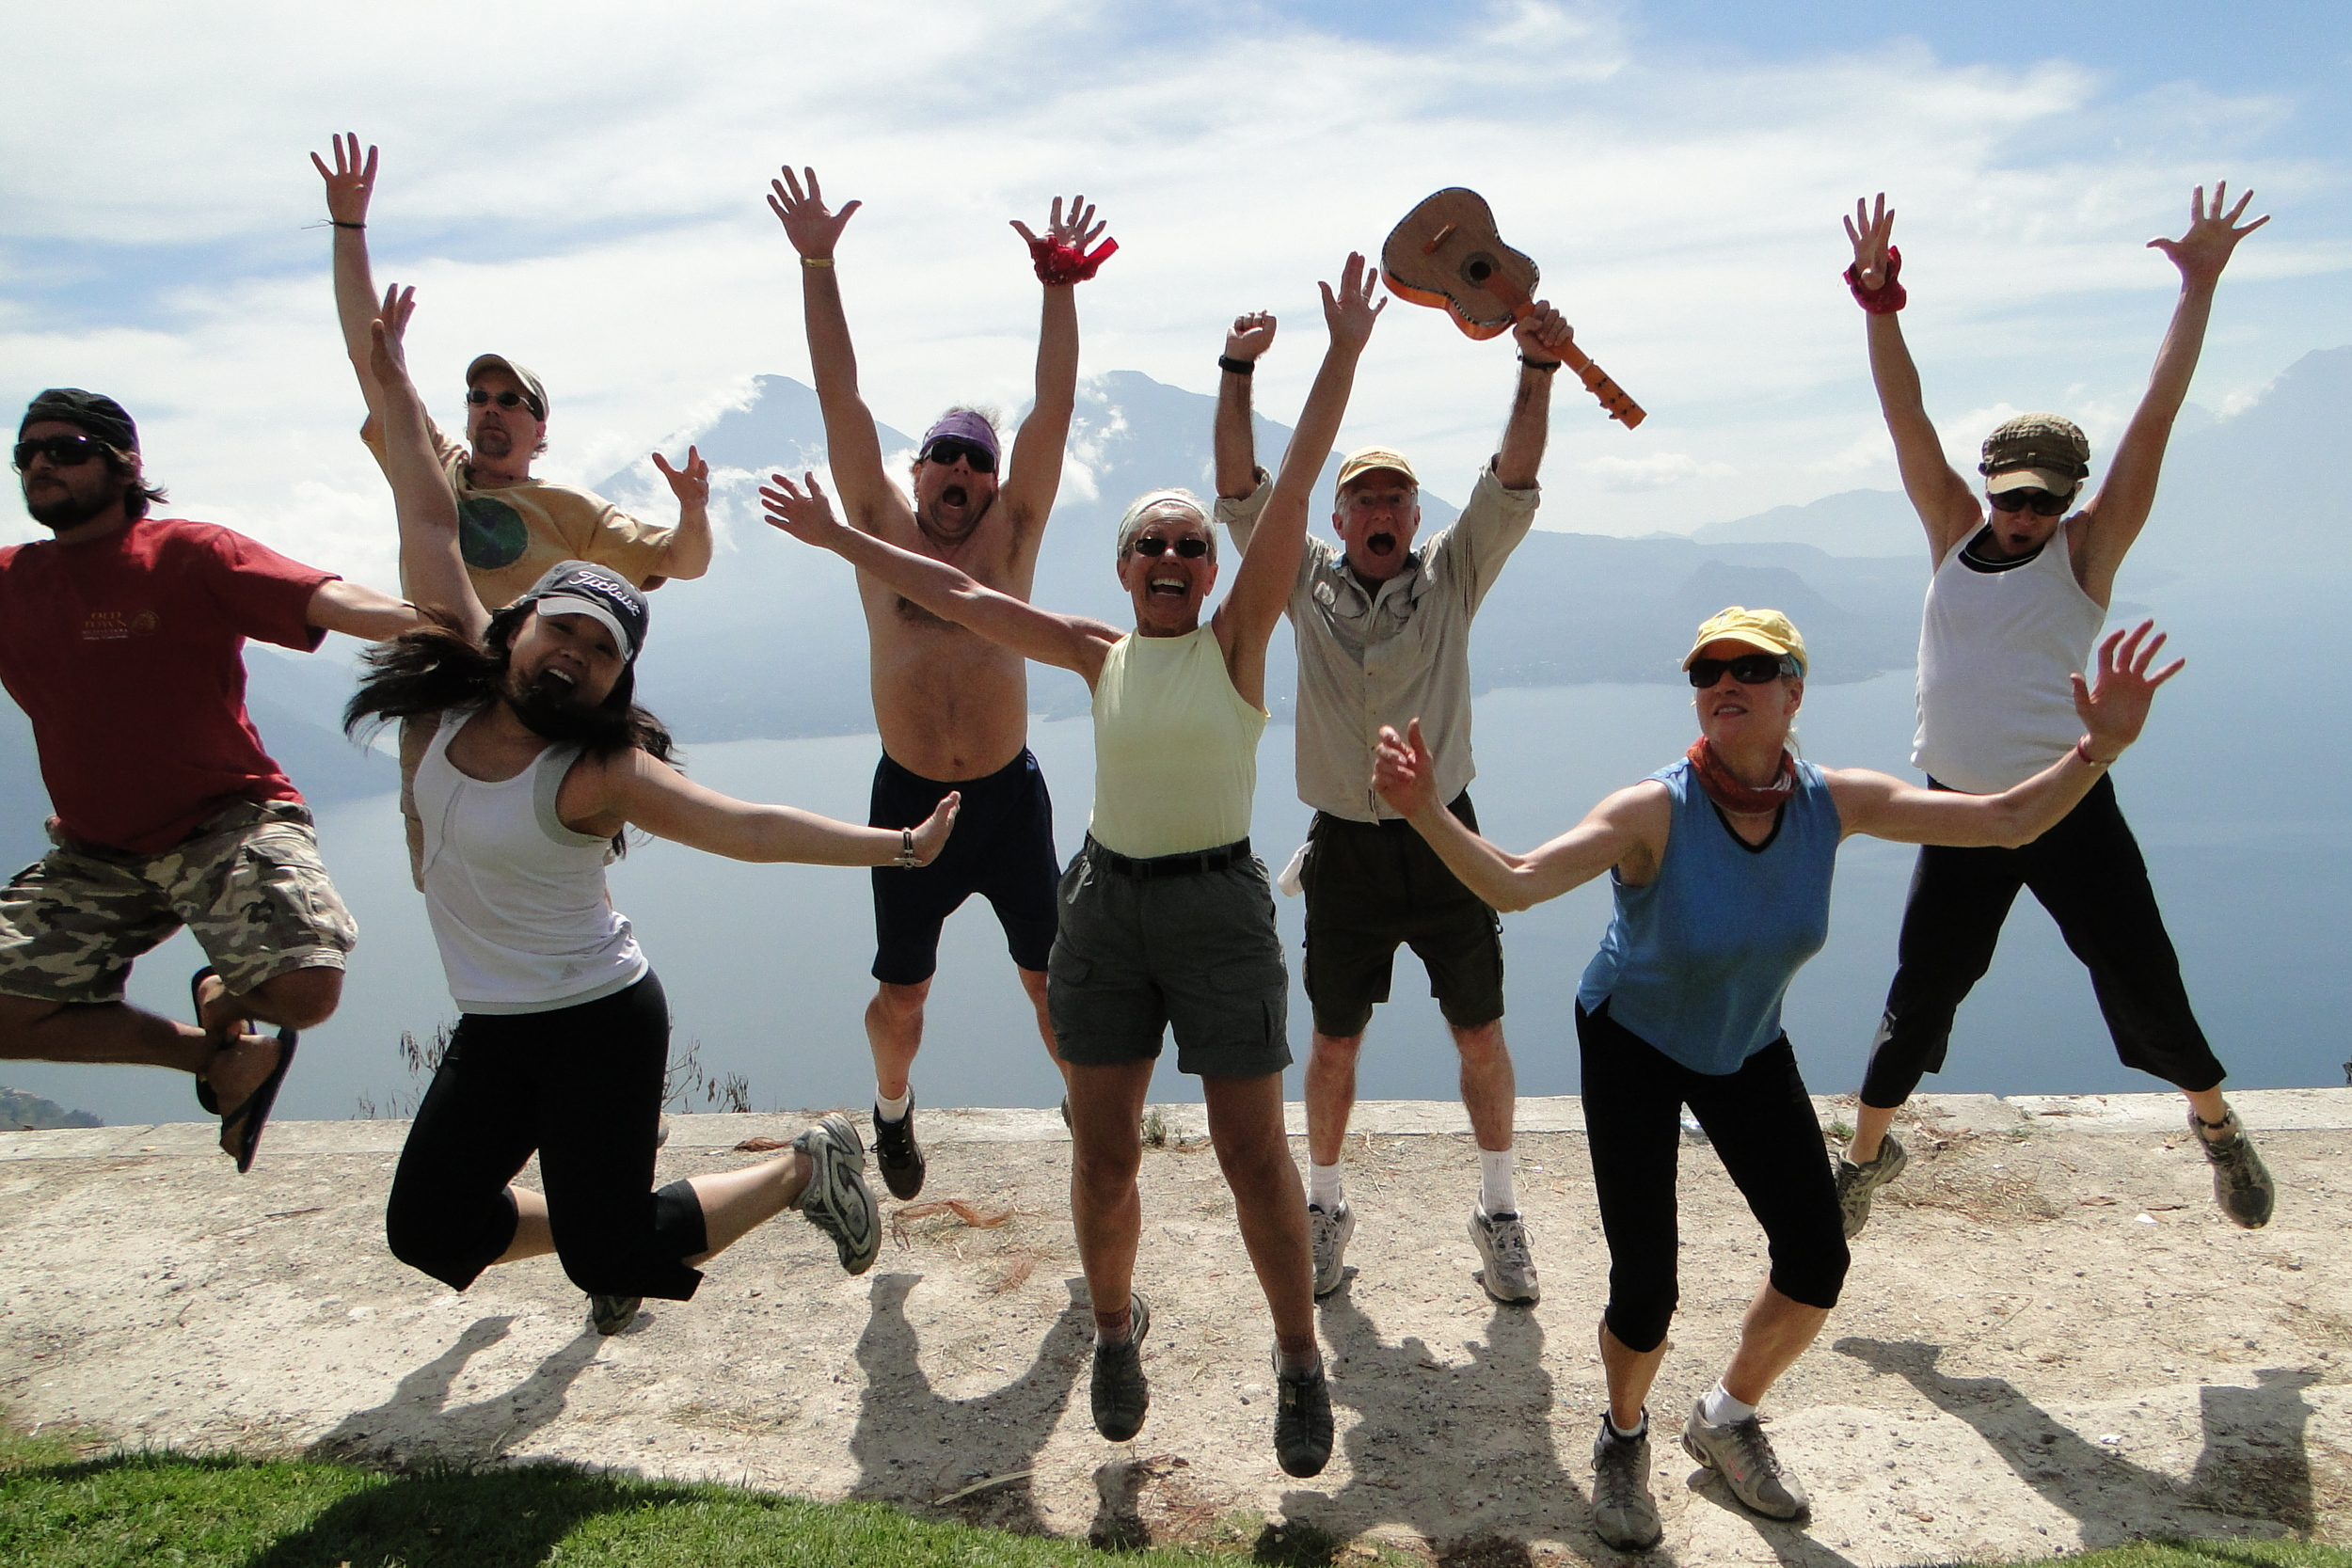 Guatemala  We built energy efficient stoves through Old Town Outfitters, hiked and kayaked Lake Atitlan, and biked Antigua Valley.